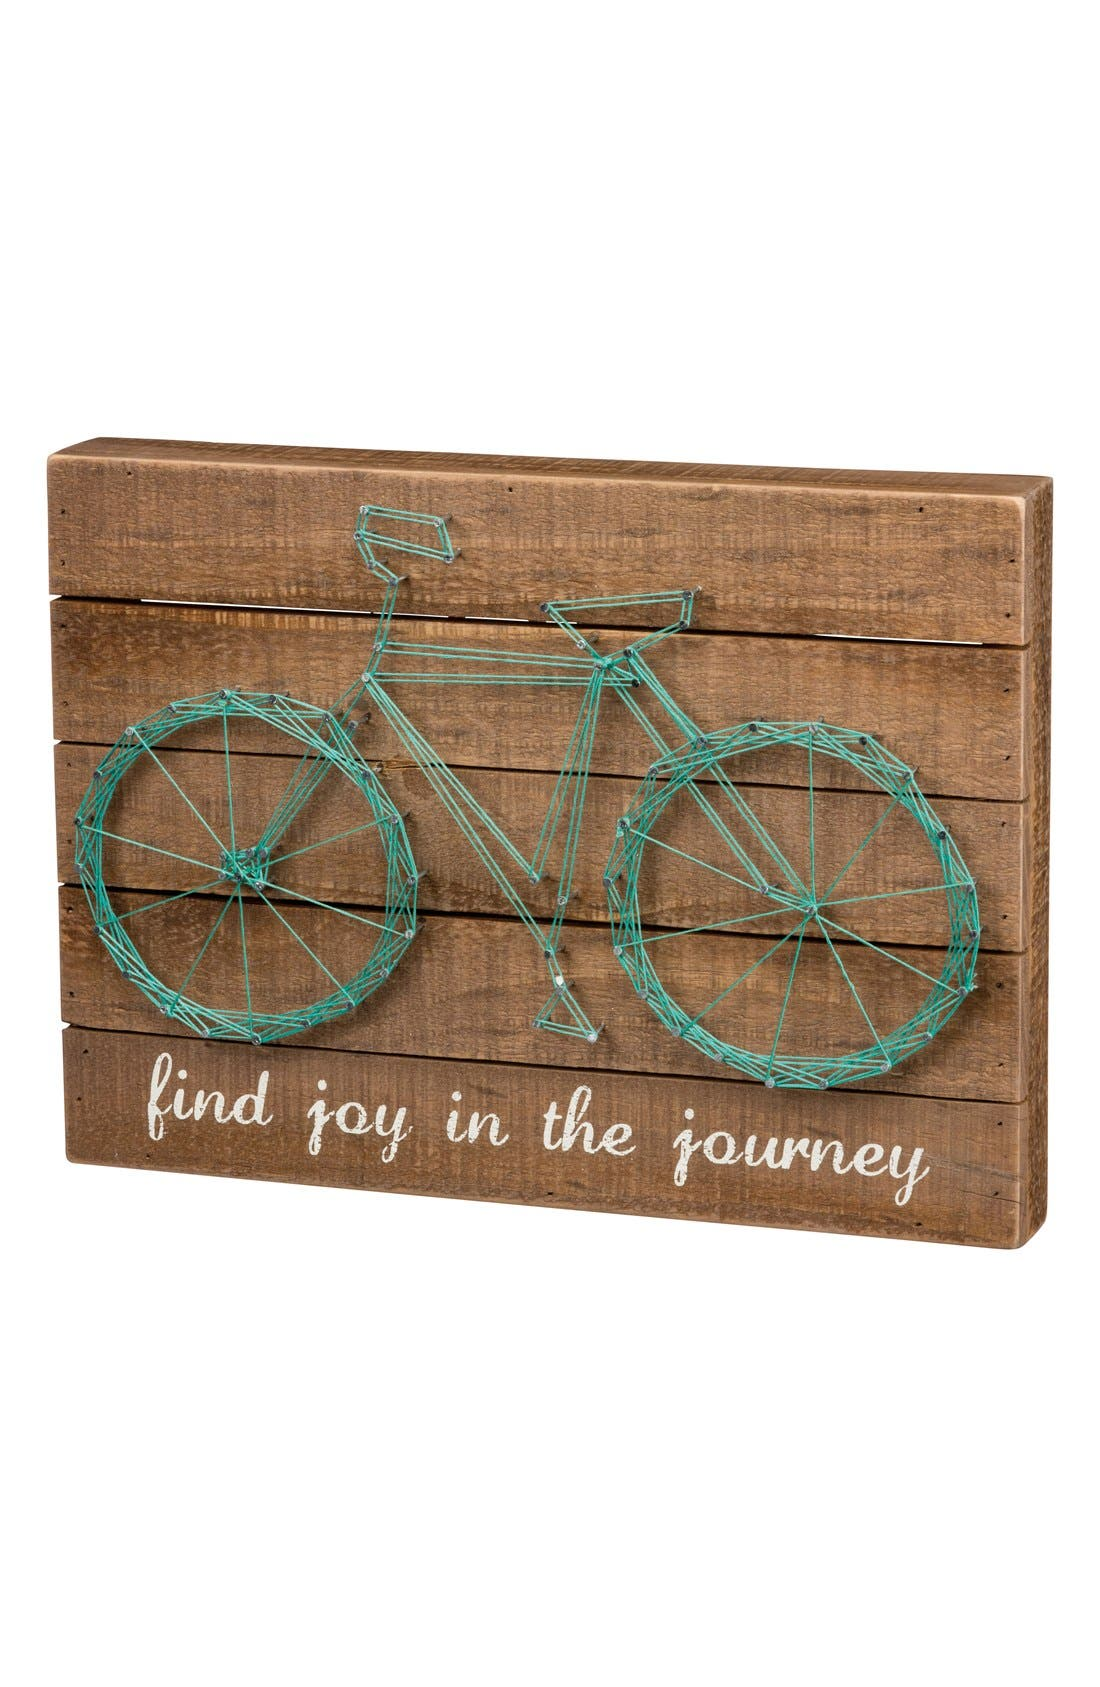 Alternate Image 1 Selected - Primitives by Kathy 'Find Joy in the Journey' String Art Box Sign